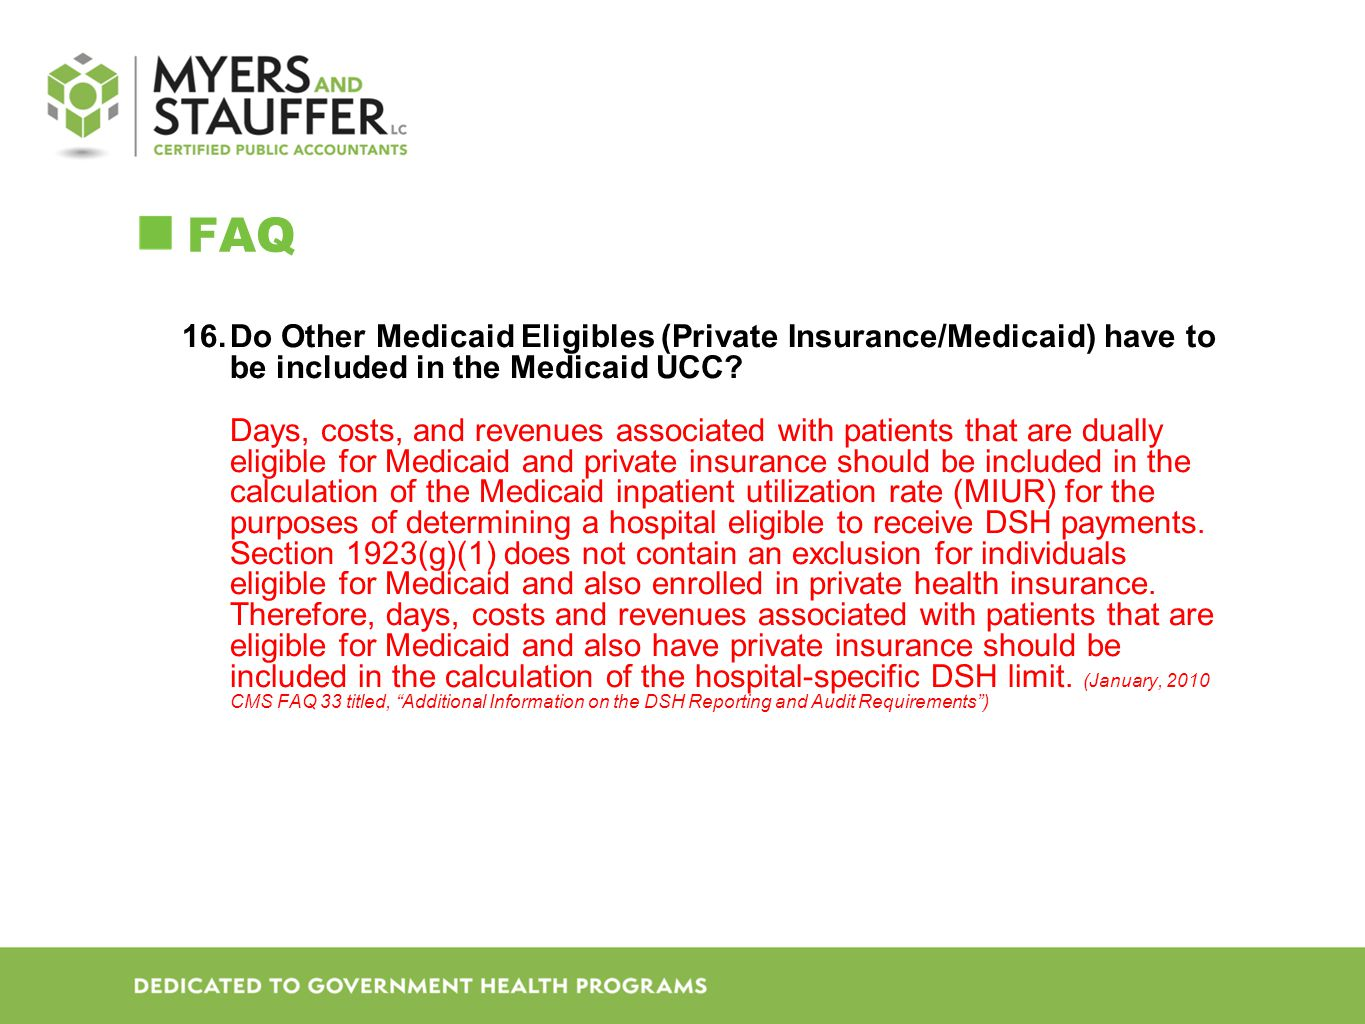 FAQ Do Other Medicaid Eligibles (Private Insurance/Medicaid) have to be included in the Medicaid UCC